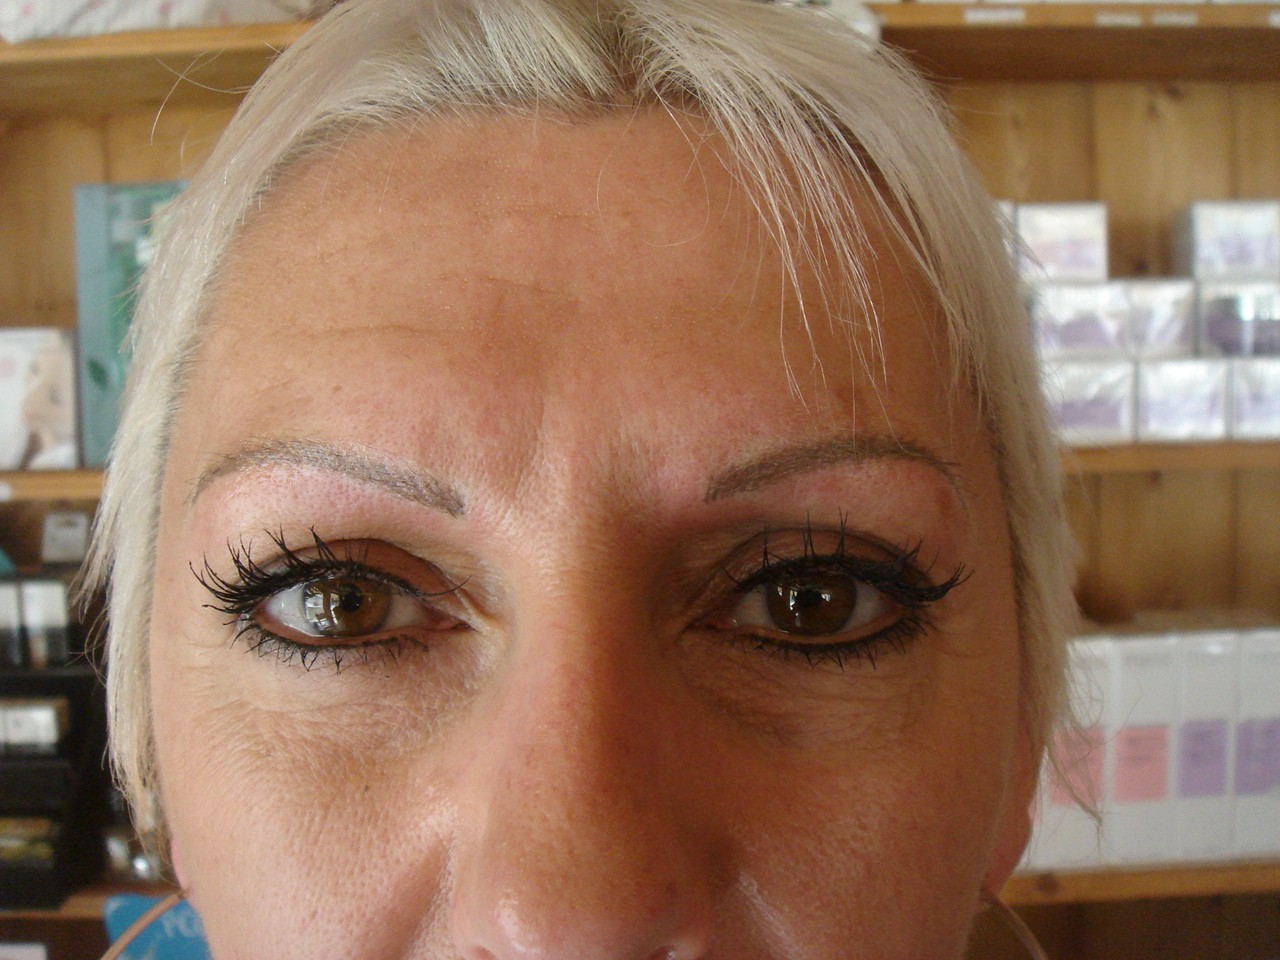 Tatouage sourcils permanent - Maquillage permanent sourcil poil poil ...